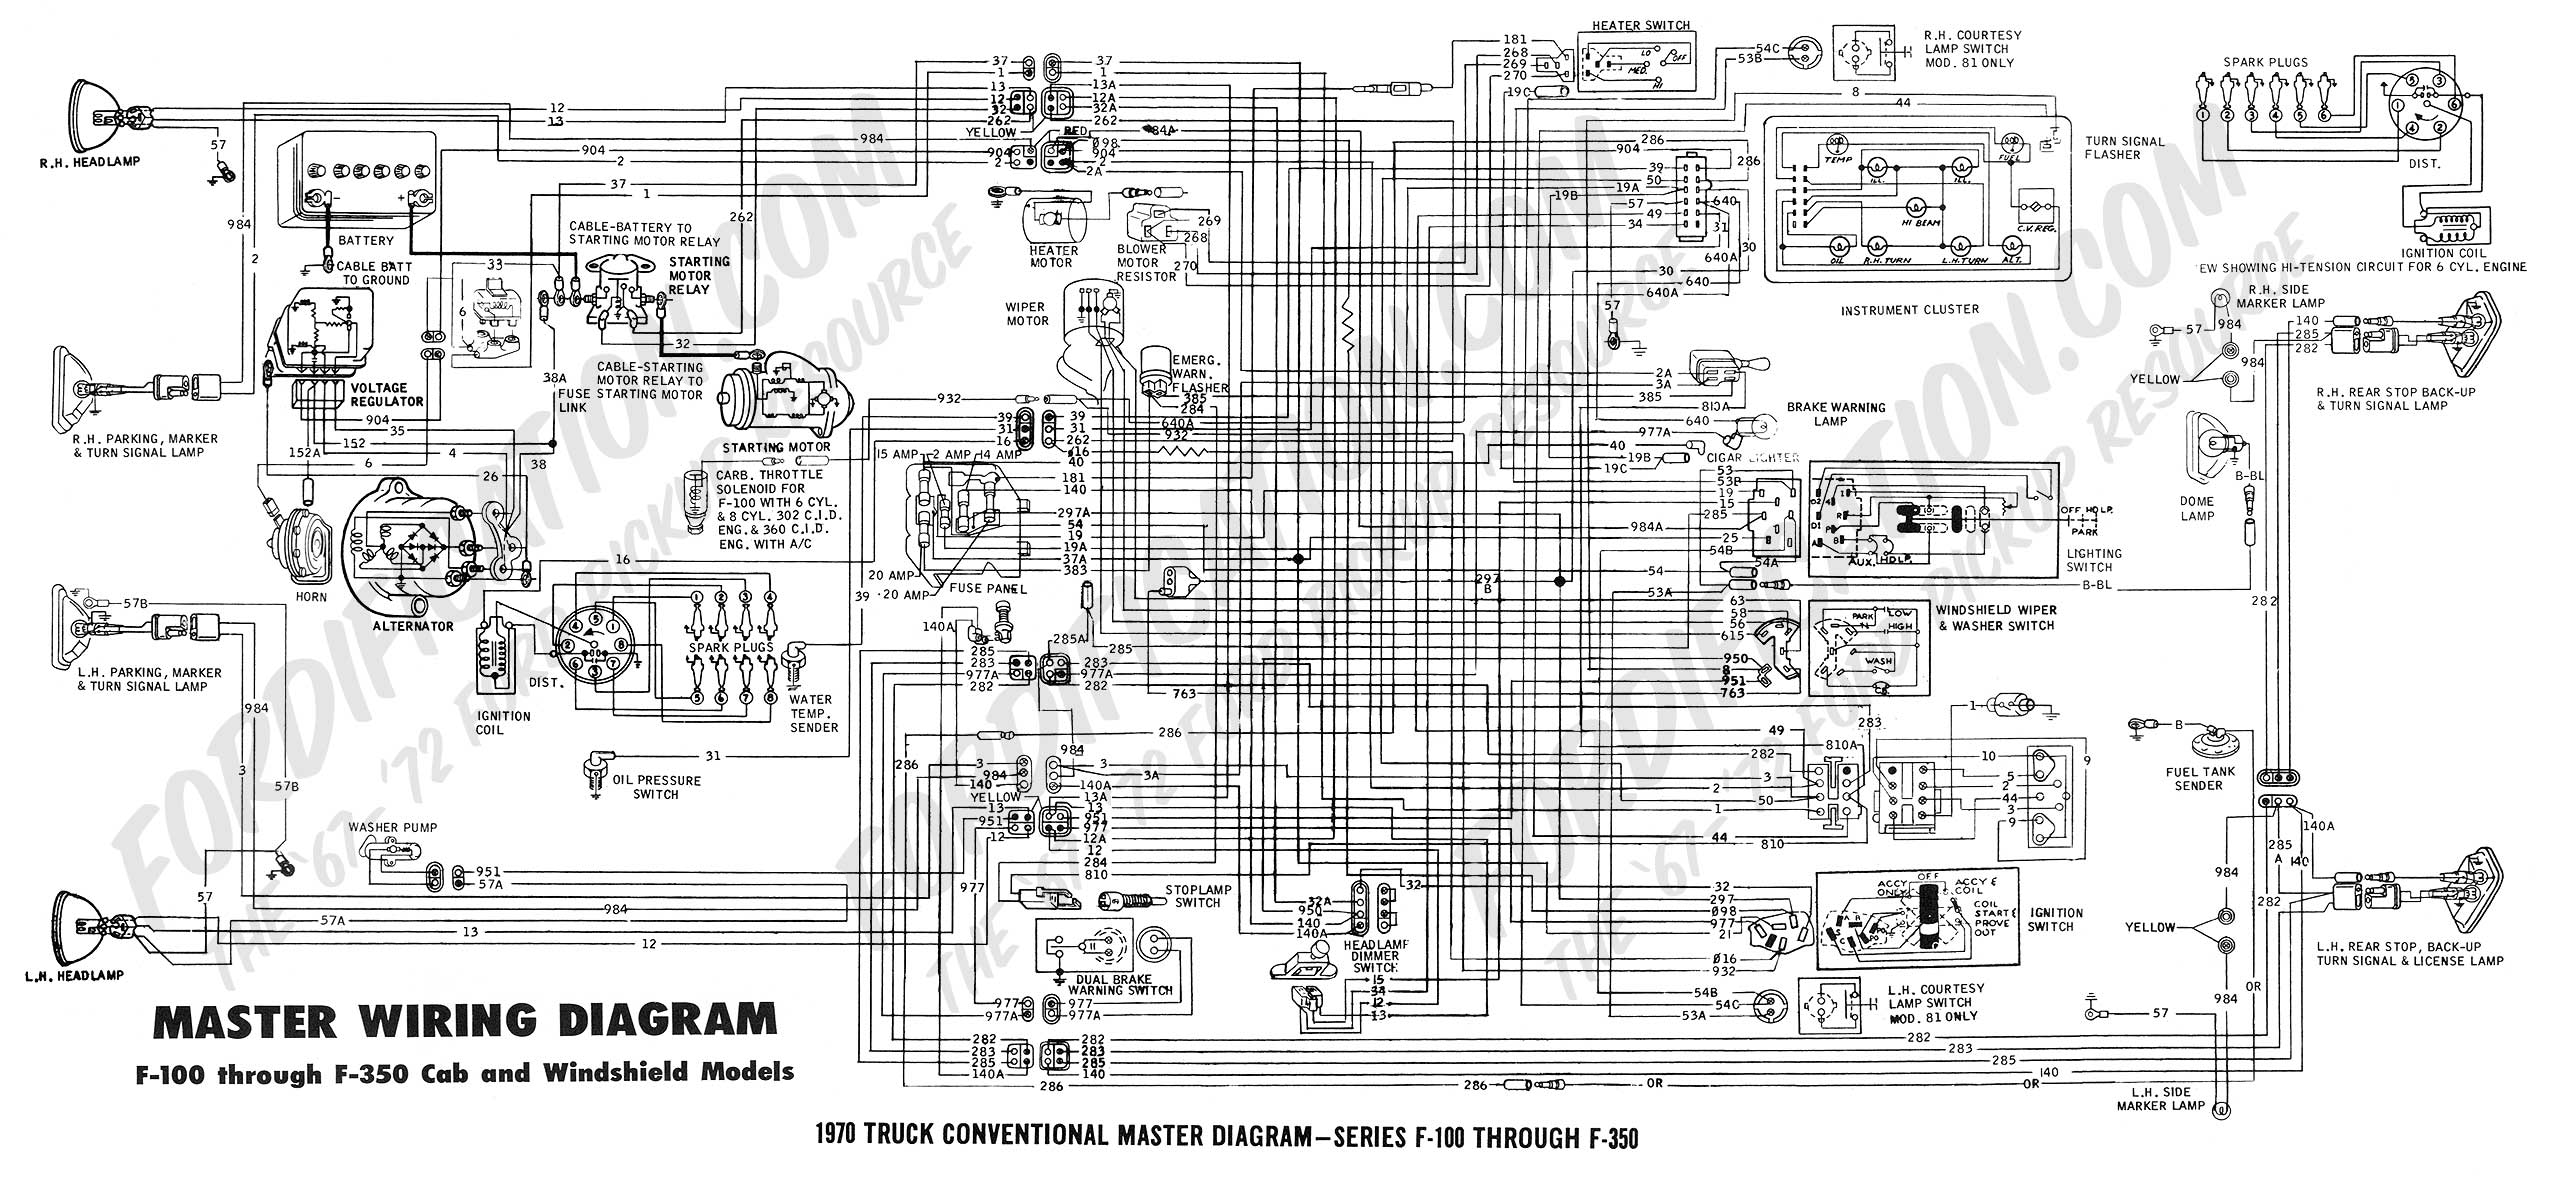 2008 dodge ram 1500 quad cab wiring diagram wirdig ford f 350 ignition wiring diagram 1996 for wiring diagrams online